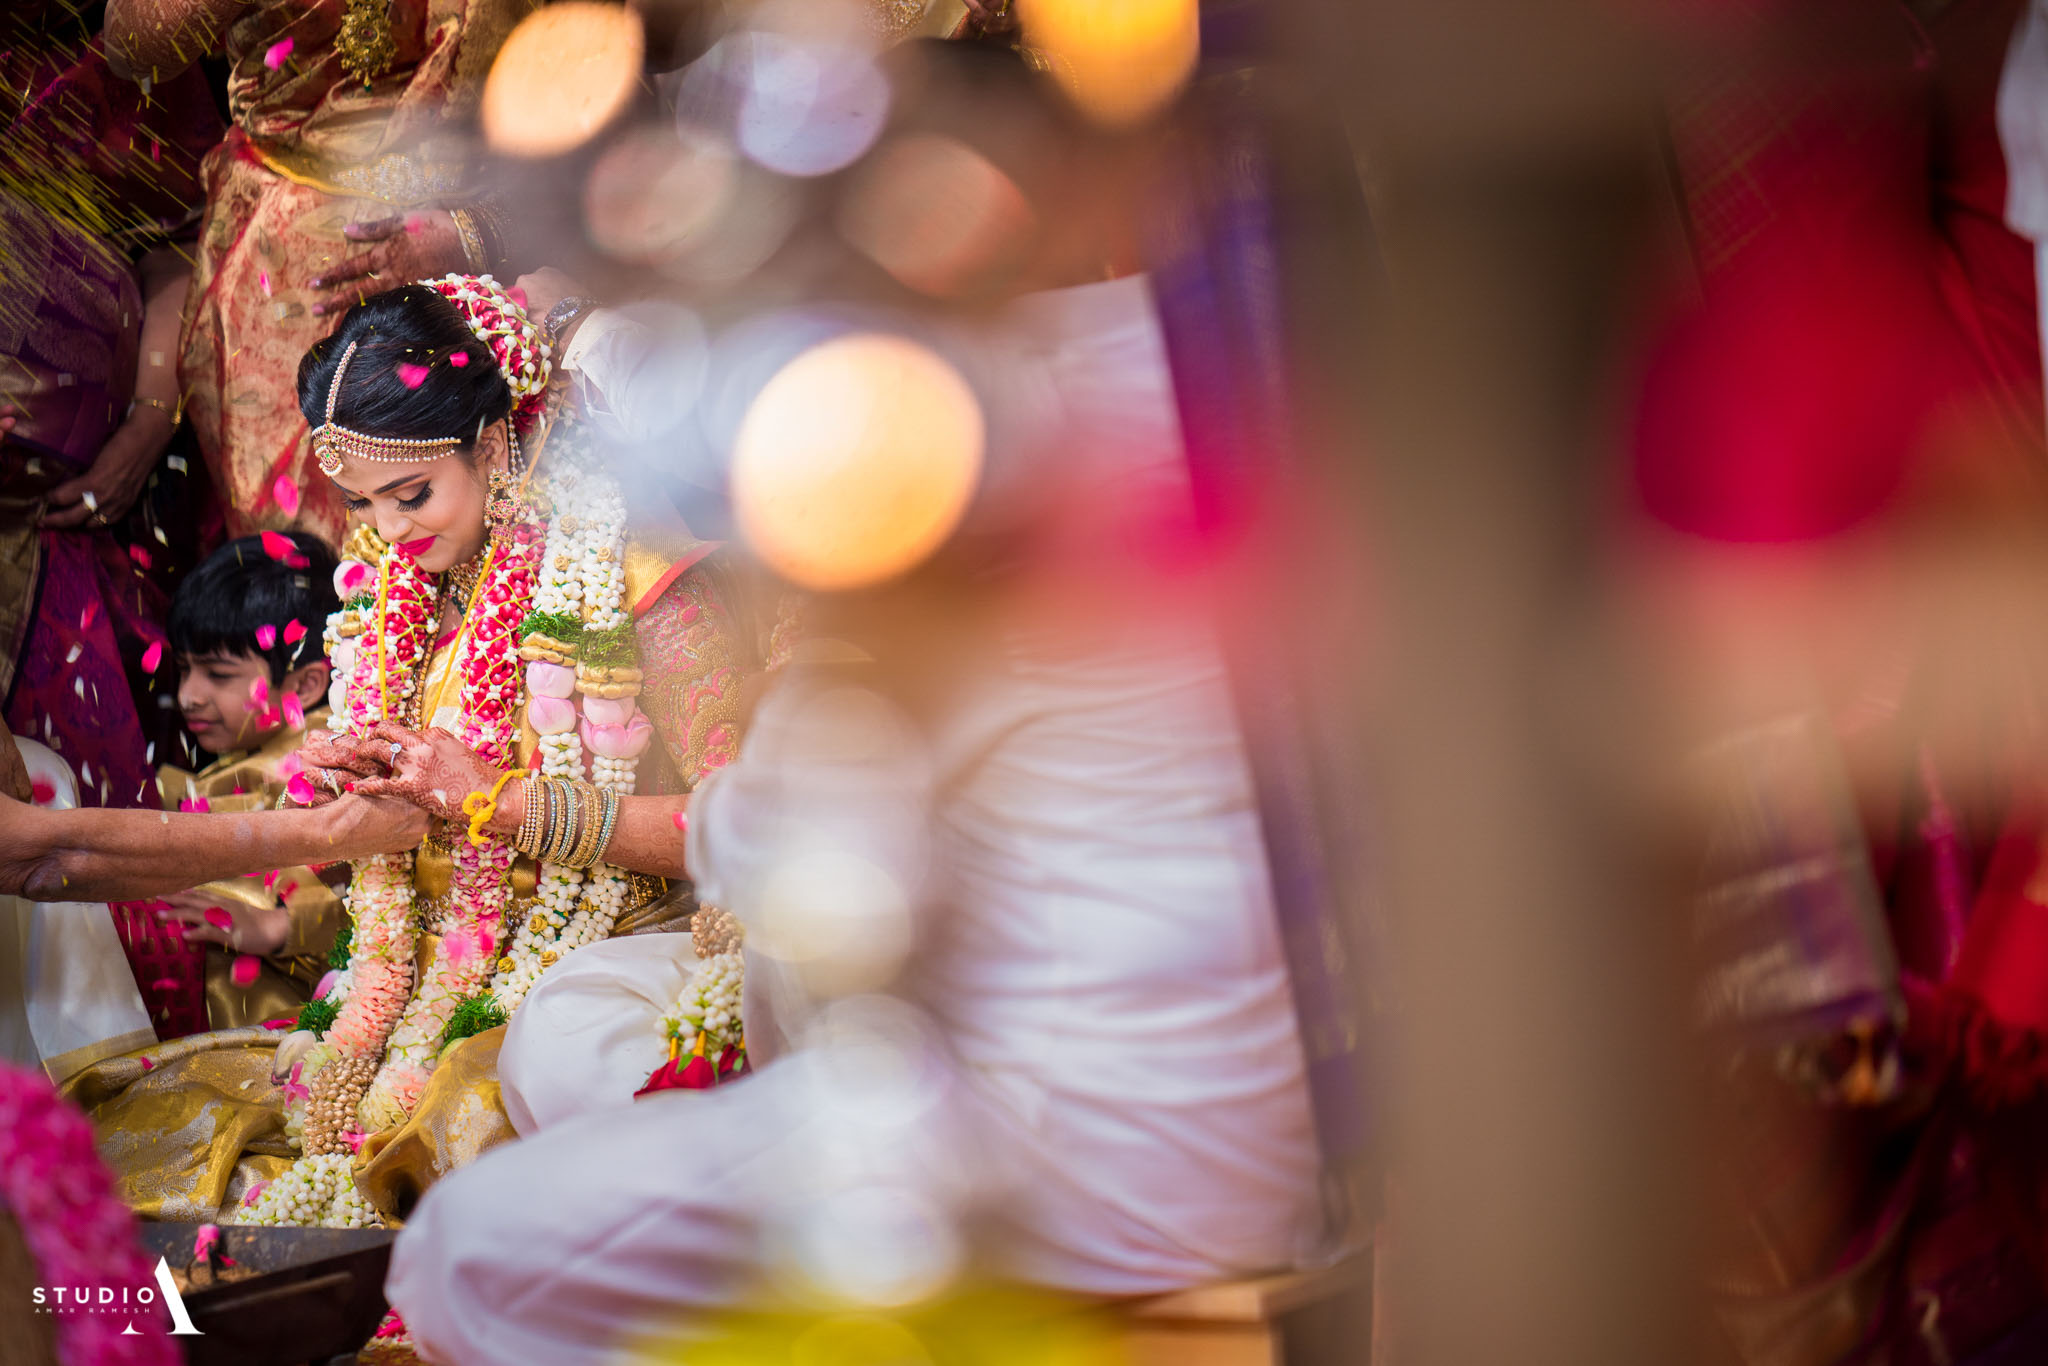 best-candid-wedding-photography-studioa-chennai-11